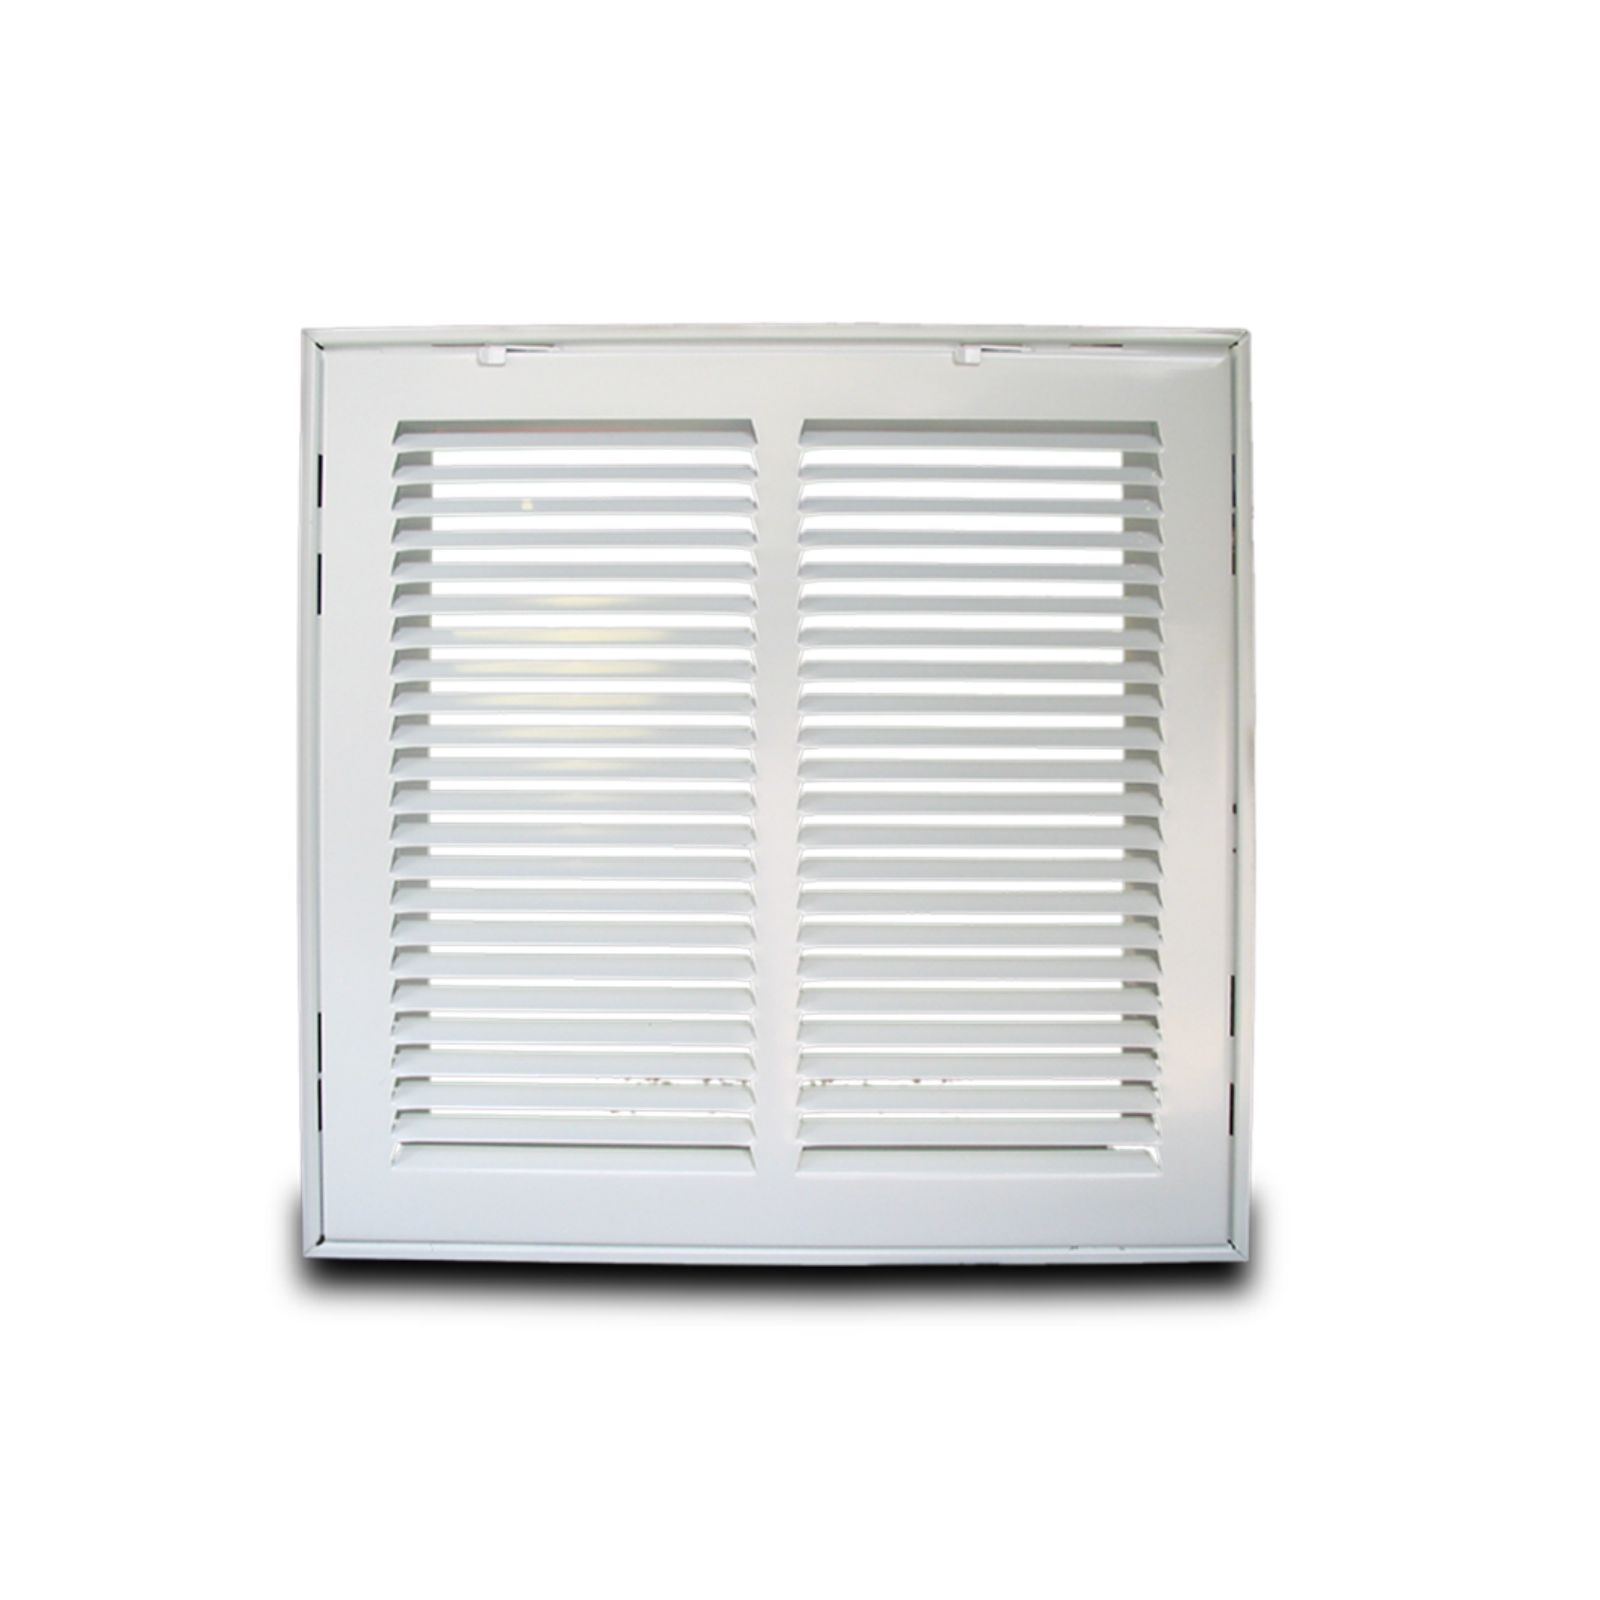 "Metal-Fab MFRFG1212W - Metal Fab Return Filter Grille, White, 12"" X 12"""